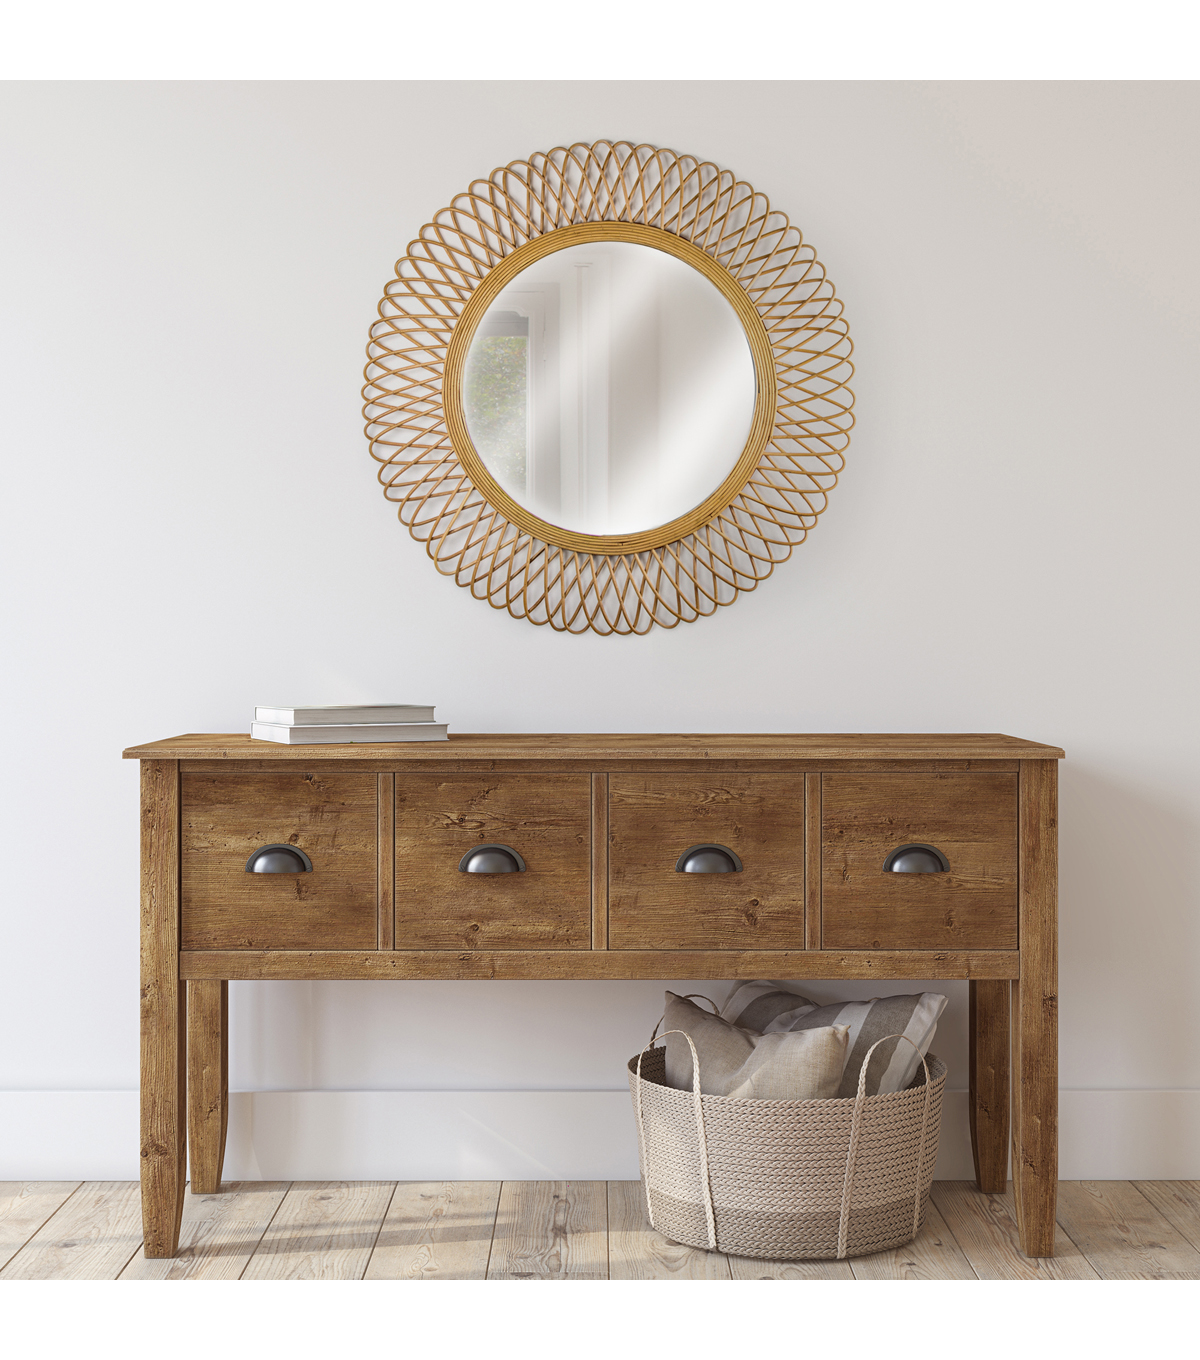 """Bamboo Weave Accent Wall: Furniture Finds 32"""" Woven Rattan Sunburst Accent Wall"""